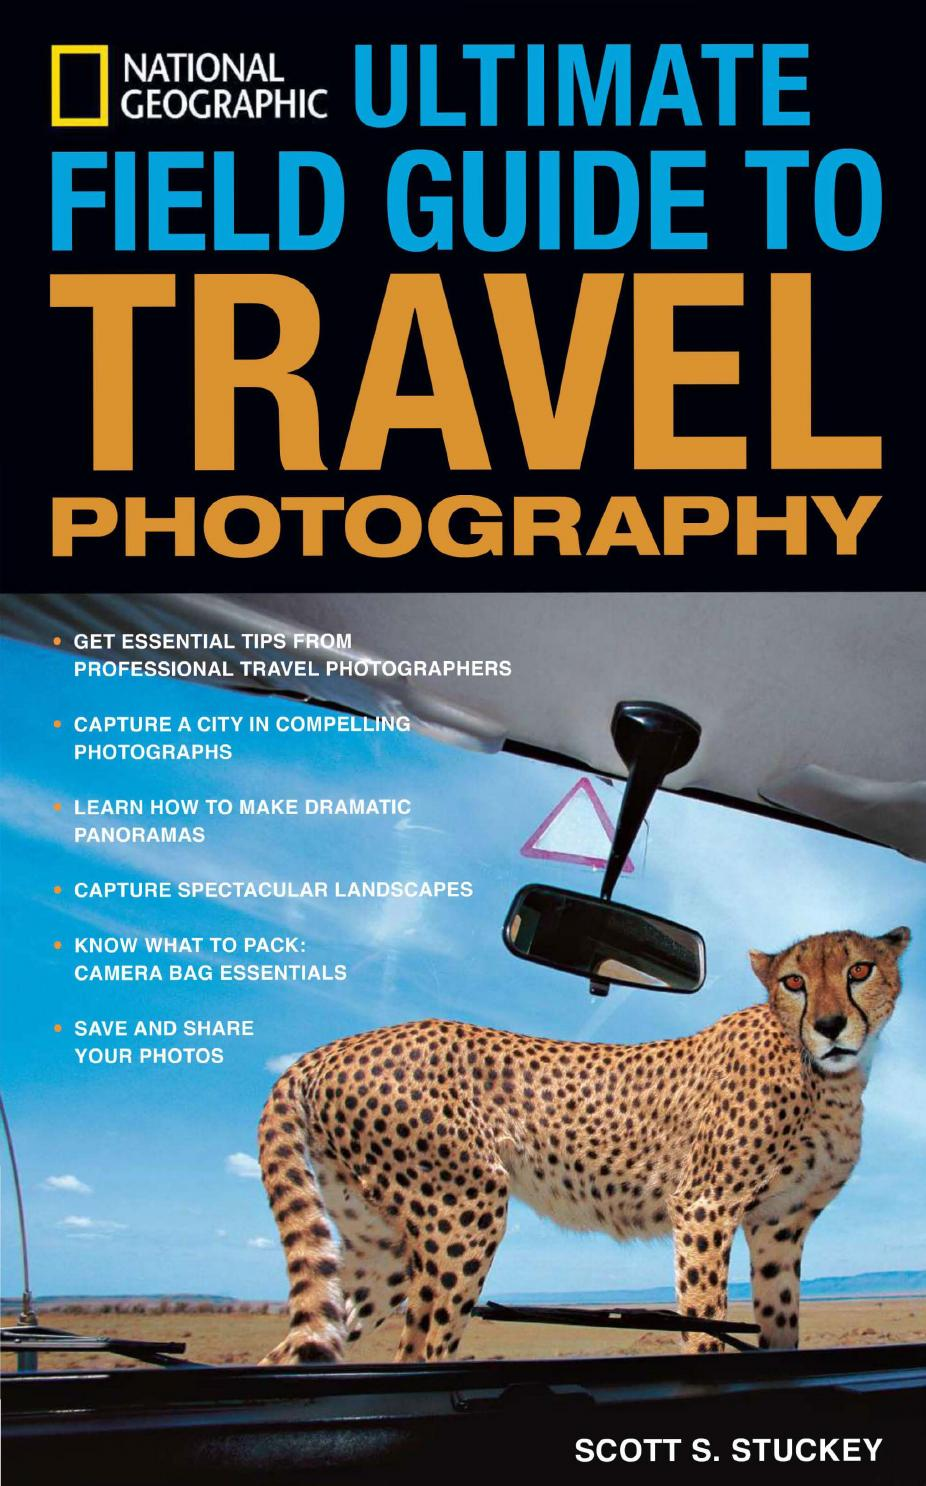 2708204e1409 National geographic ultimate field guide to travel photography by Ridha  Hajjaji - issuu